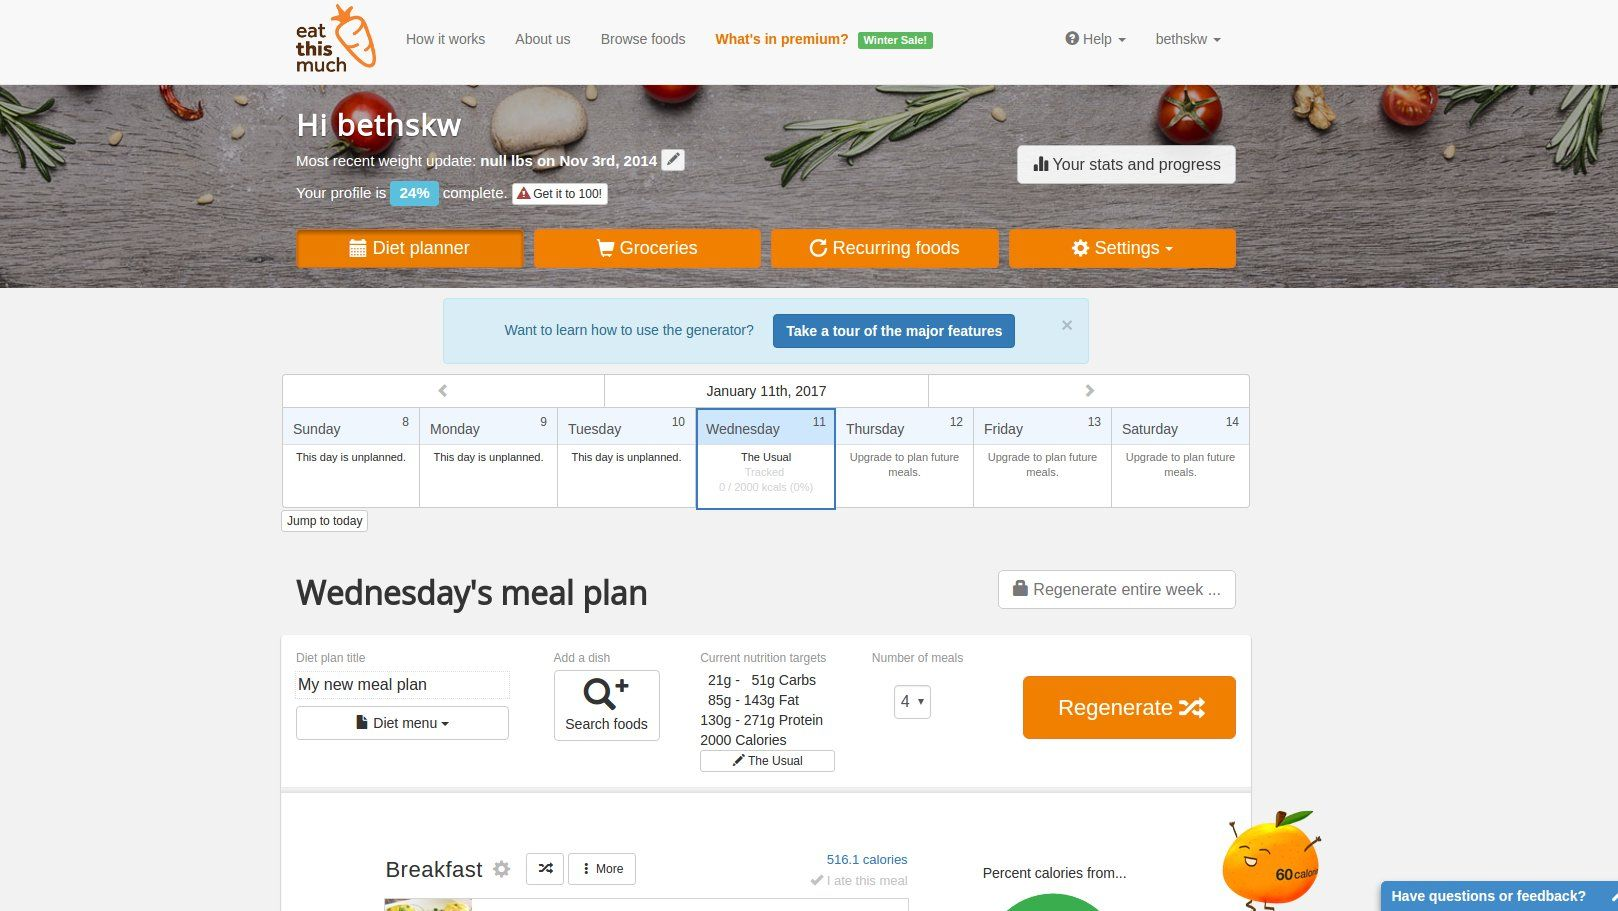 lifehacker: RT VitalsLH: Meal planner eatthismuch adds a calendar and more to its free service:  https://t.co/RcSj6hnnJZ